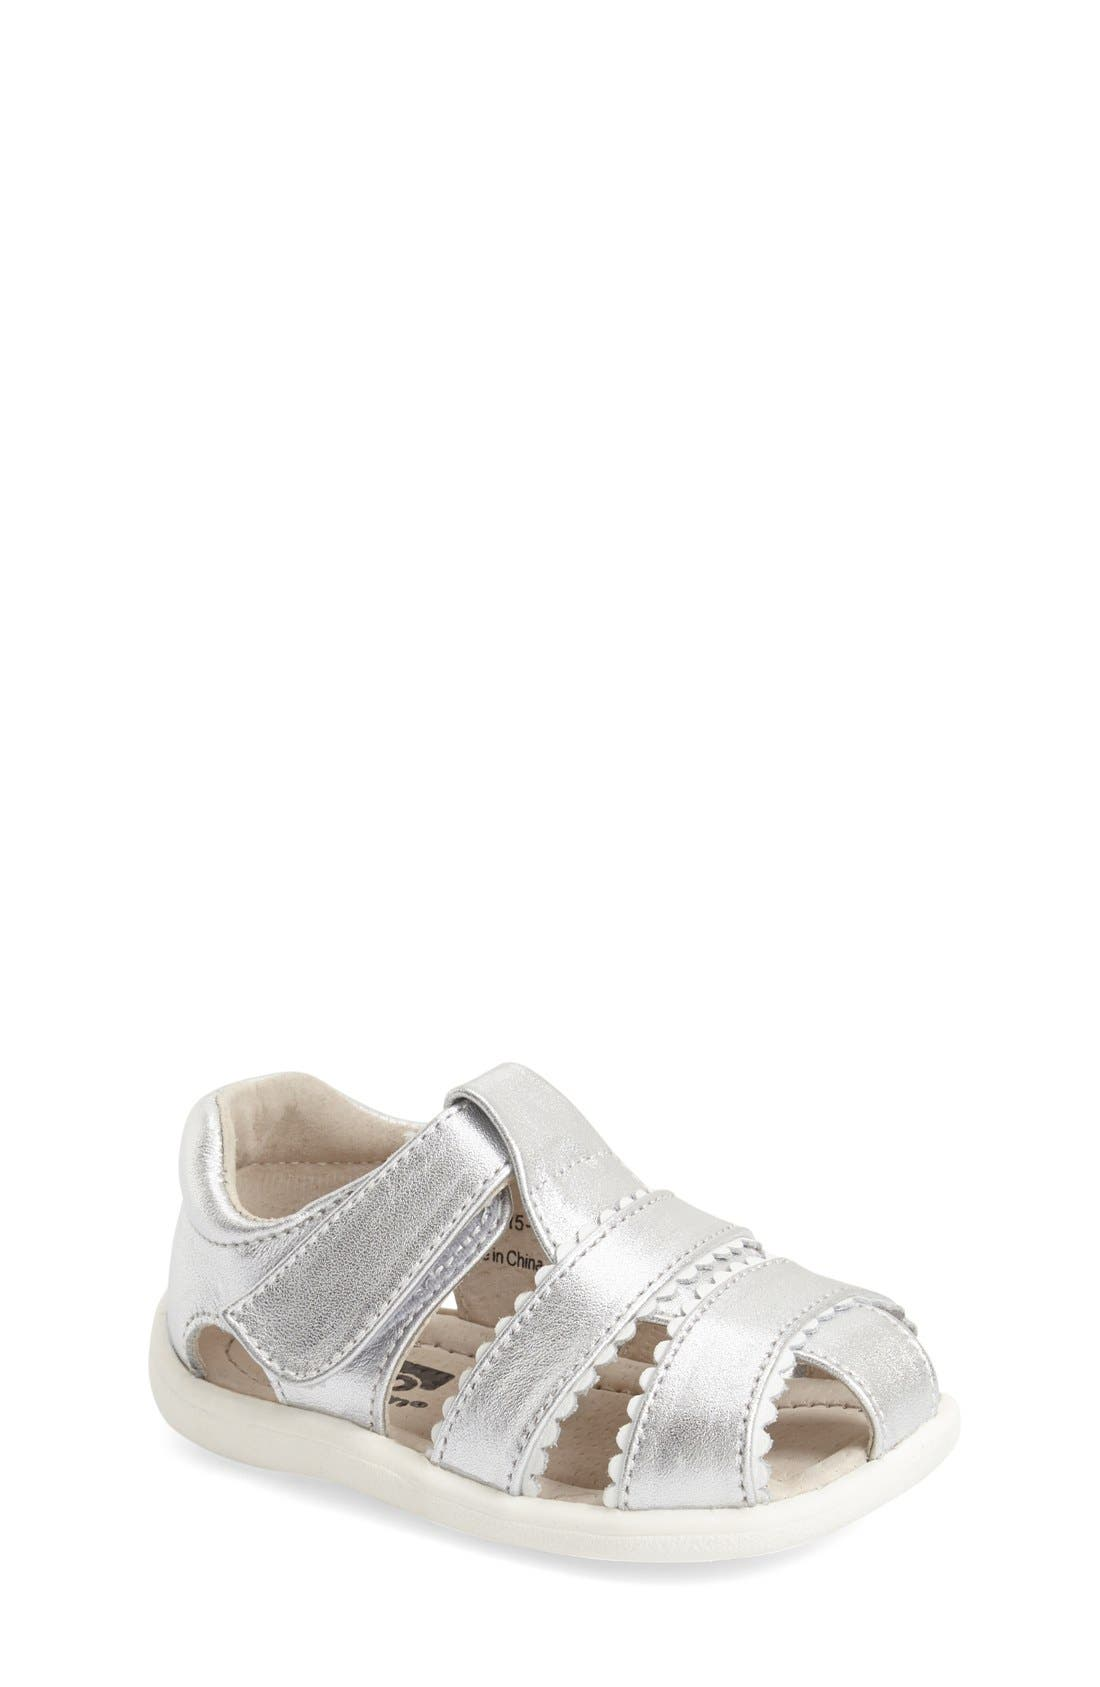 See Kai Run 'Gloria II' Leather Fisherman Sandal (Baby, Walker & Toddler)